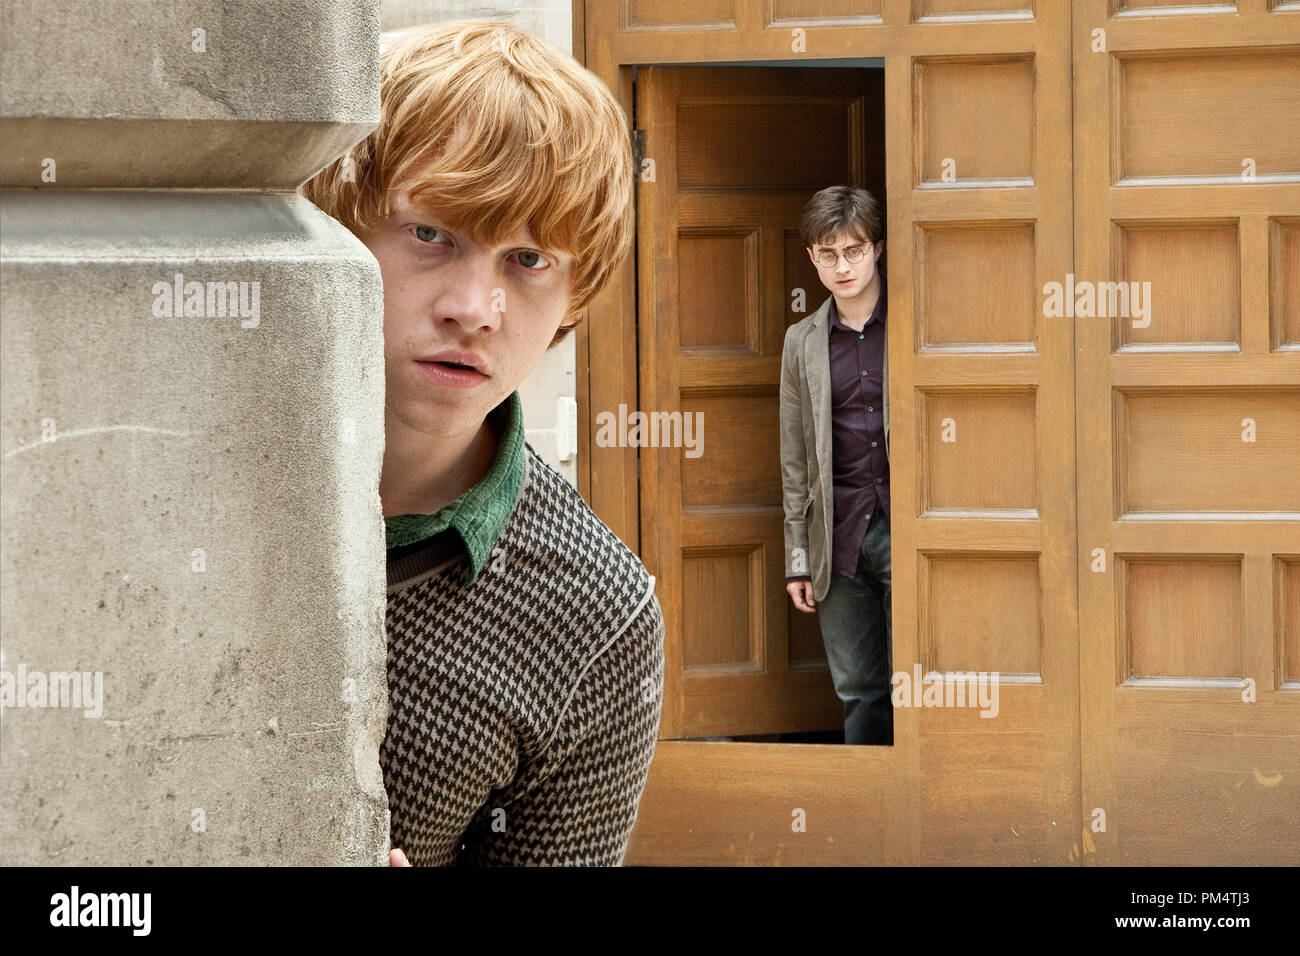 (L-r) RUPERT GRINT as Ron Weasley and DANIEL RADCLIFFE as Harry Potter in Warner Bros. PicturesÕ fantasy adventure ÒHARRY POTTER AND THE DEATHLY HALLOWS Ð PART 1,Ó a Warner Bros. Pictures release.    Photo by Jaap Buitendijk - Stock Image